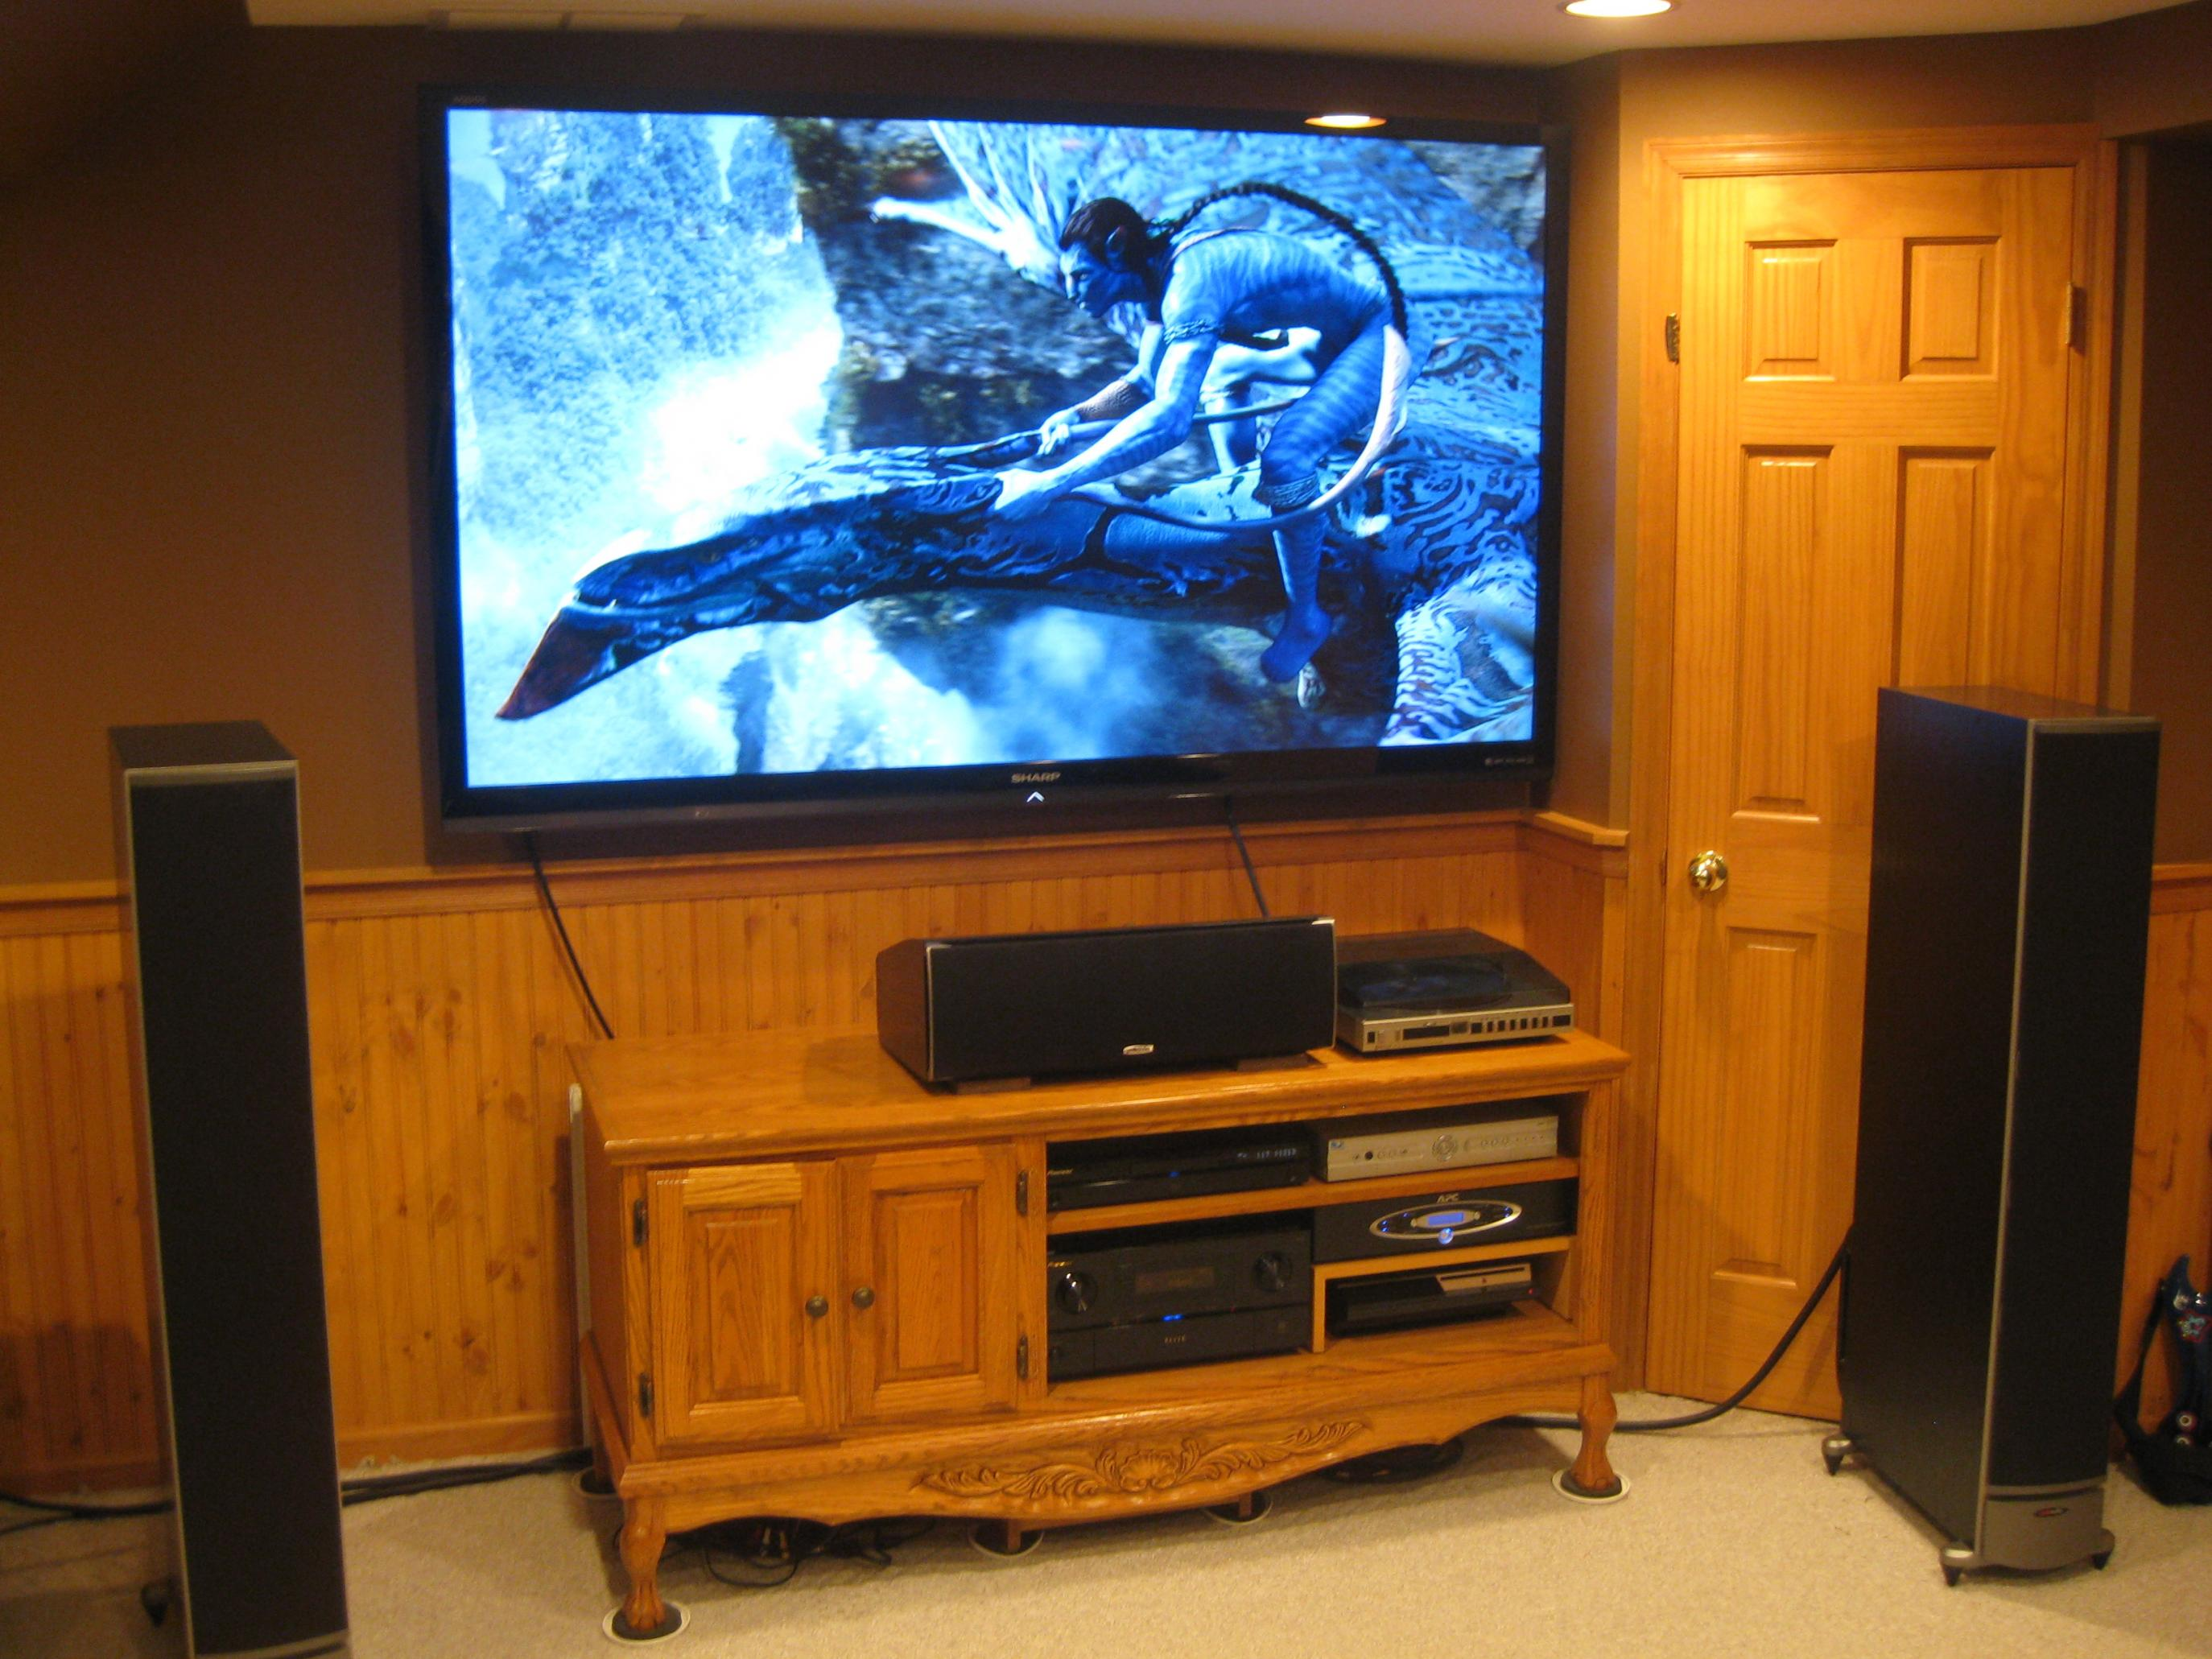 forum wii tv setup your page dlp of mitsubishi forums picture u post a gaming untitled